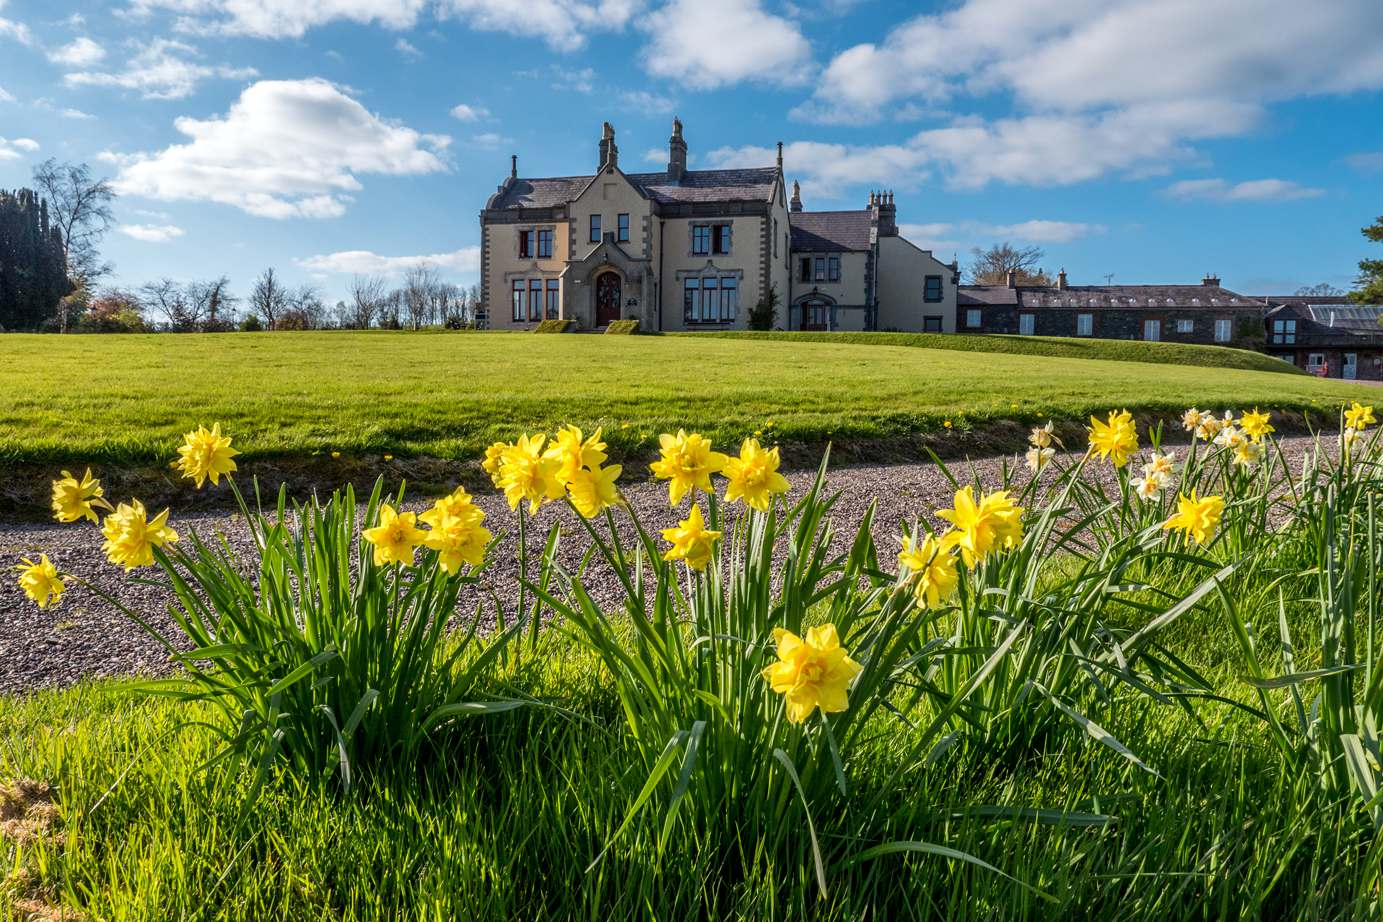 The Tyrone Guthrie Centre